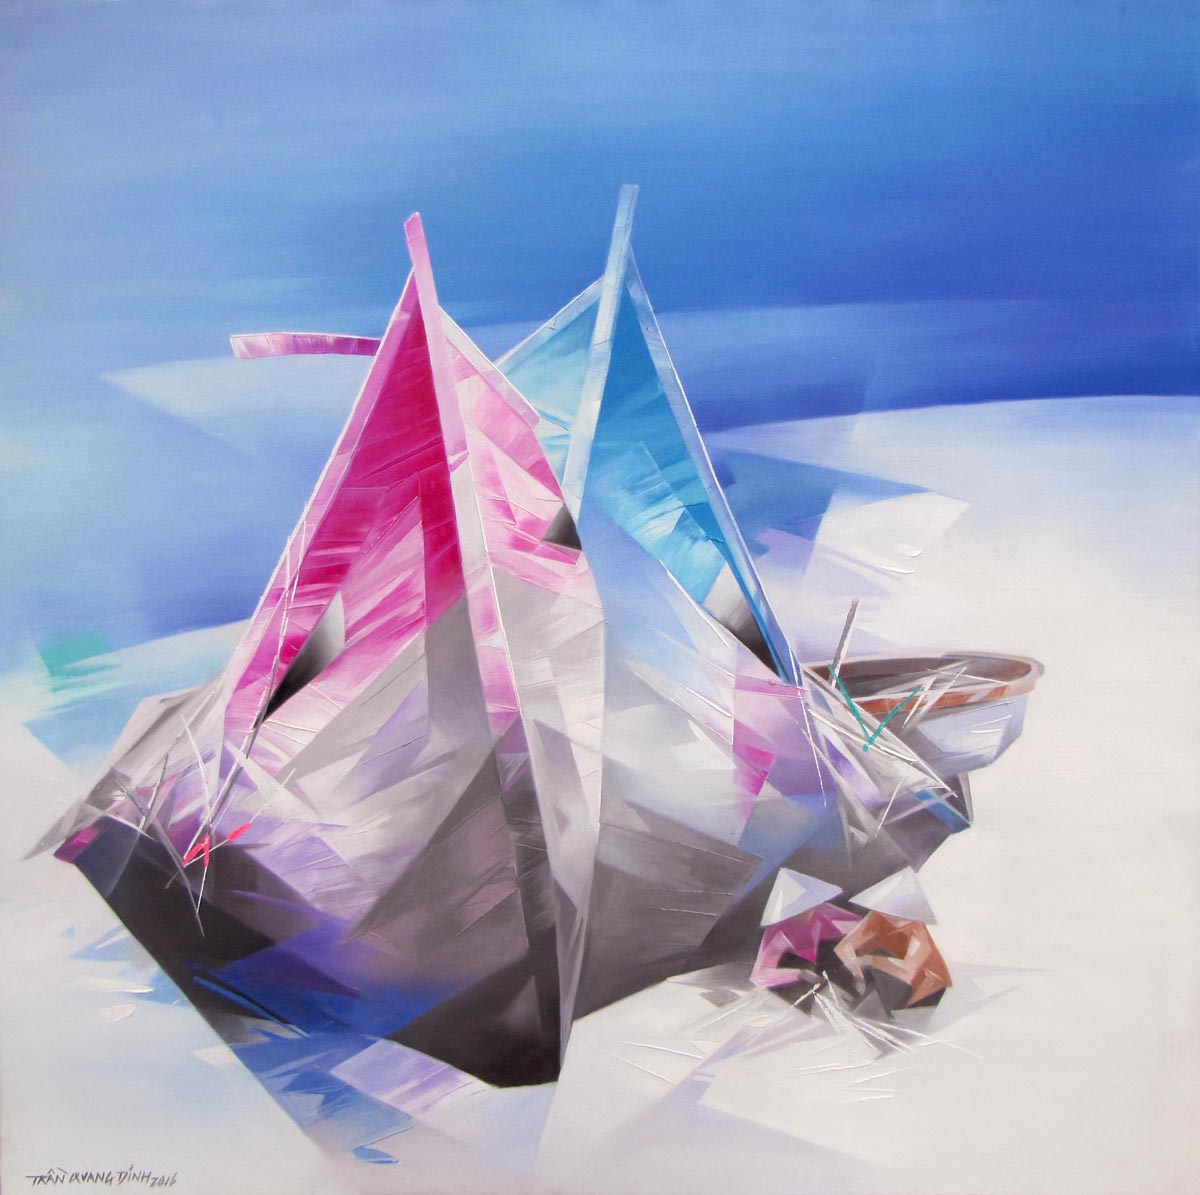 Vietnamese Art-Resting Boats 06, an Oil Painting on Canvas